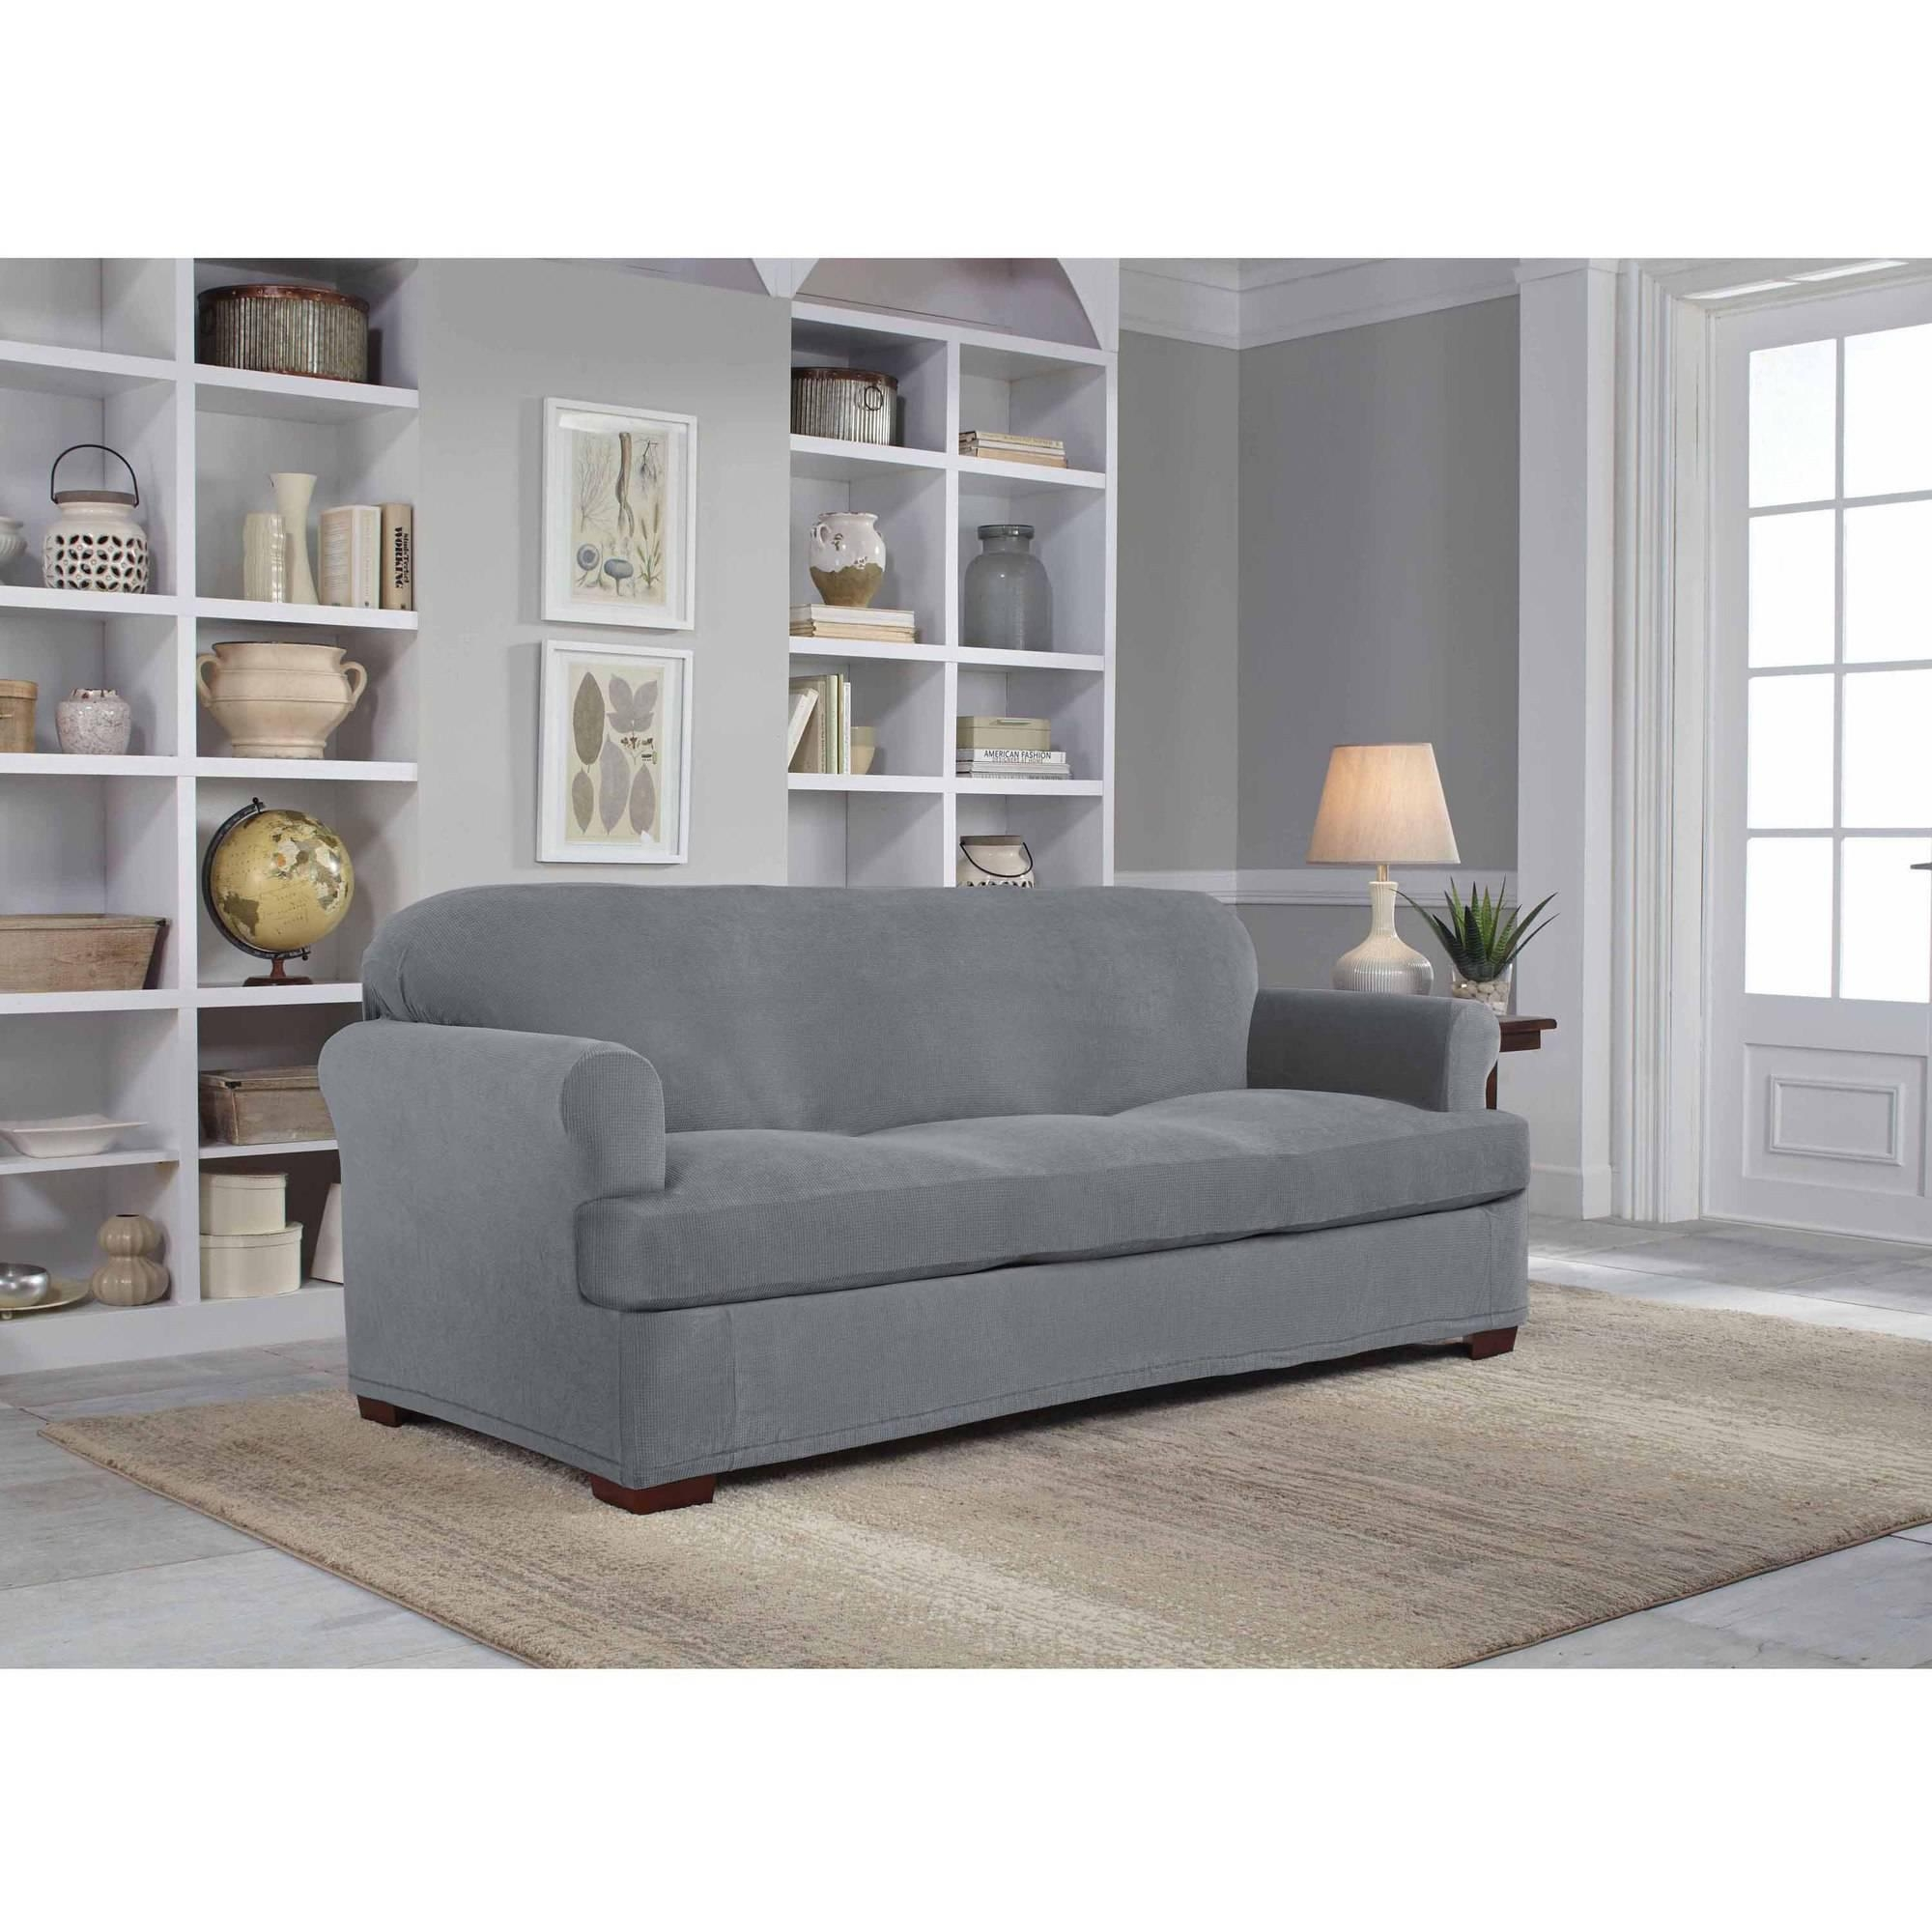 large sofa pillows convertible sofas reviews t cushion slipcovers for ideas